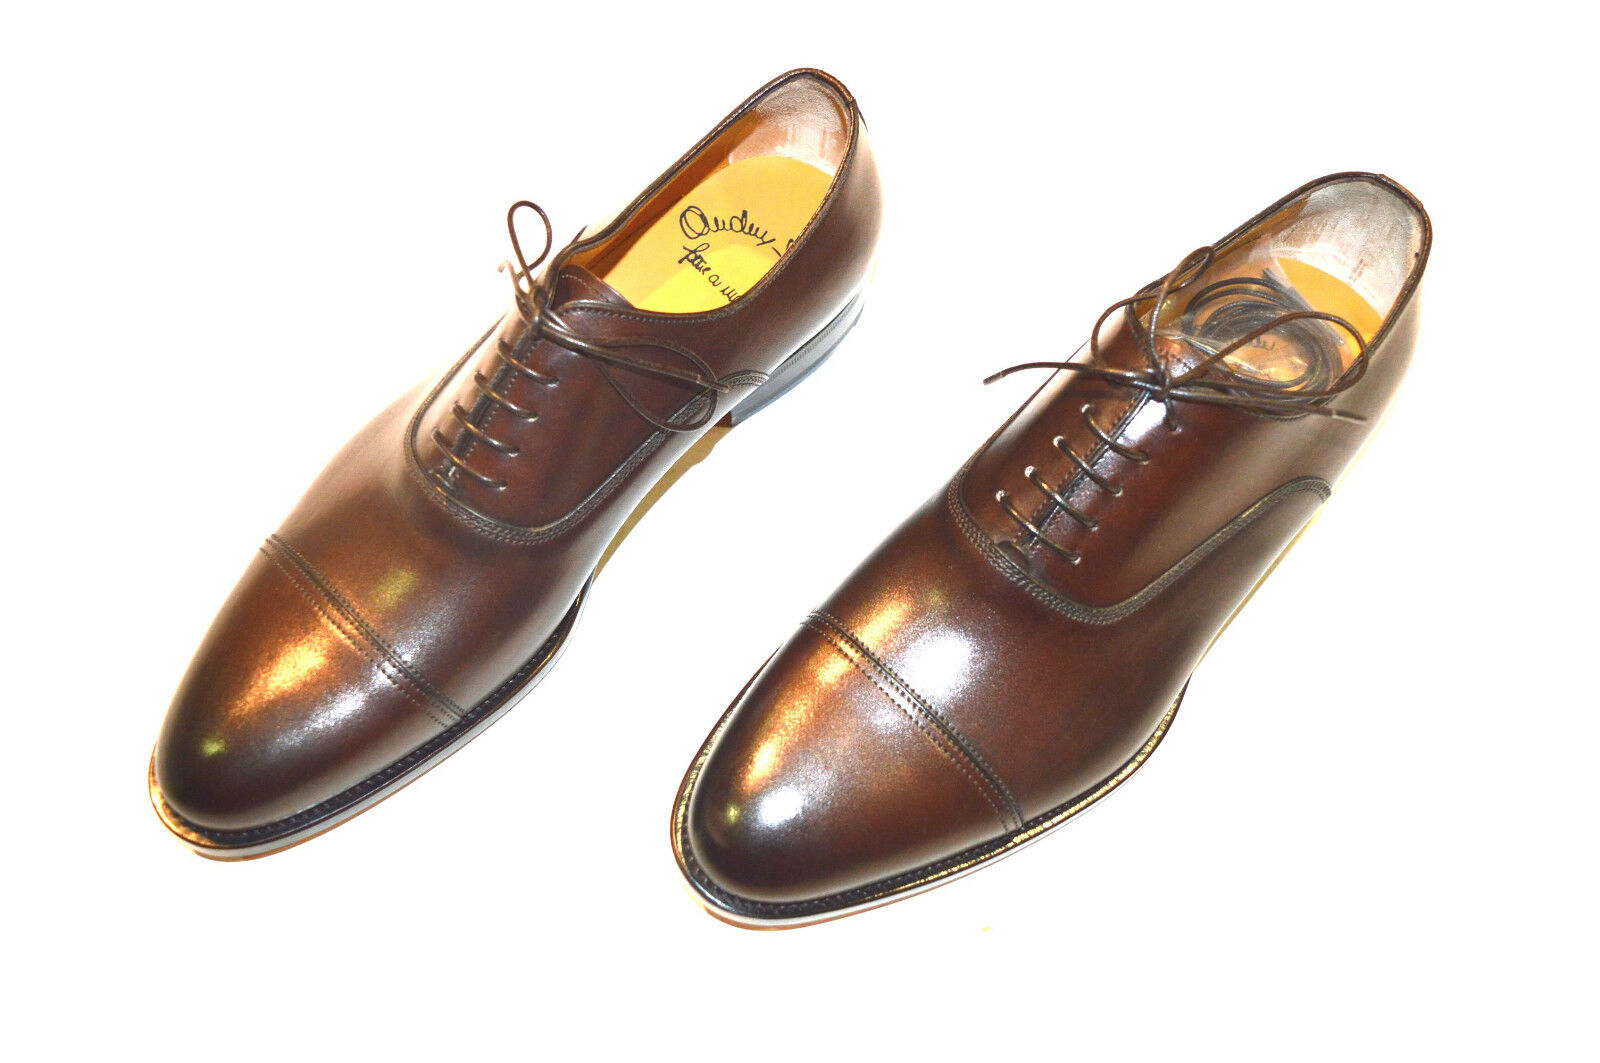 NEW SANTONI SANTONI SANTONI Dress Brown Pelle Shoes  SIZE Eu 41.5 Uk 7.5 Us 8.5 (9R) a80dae